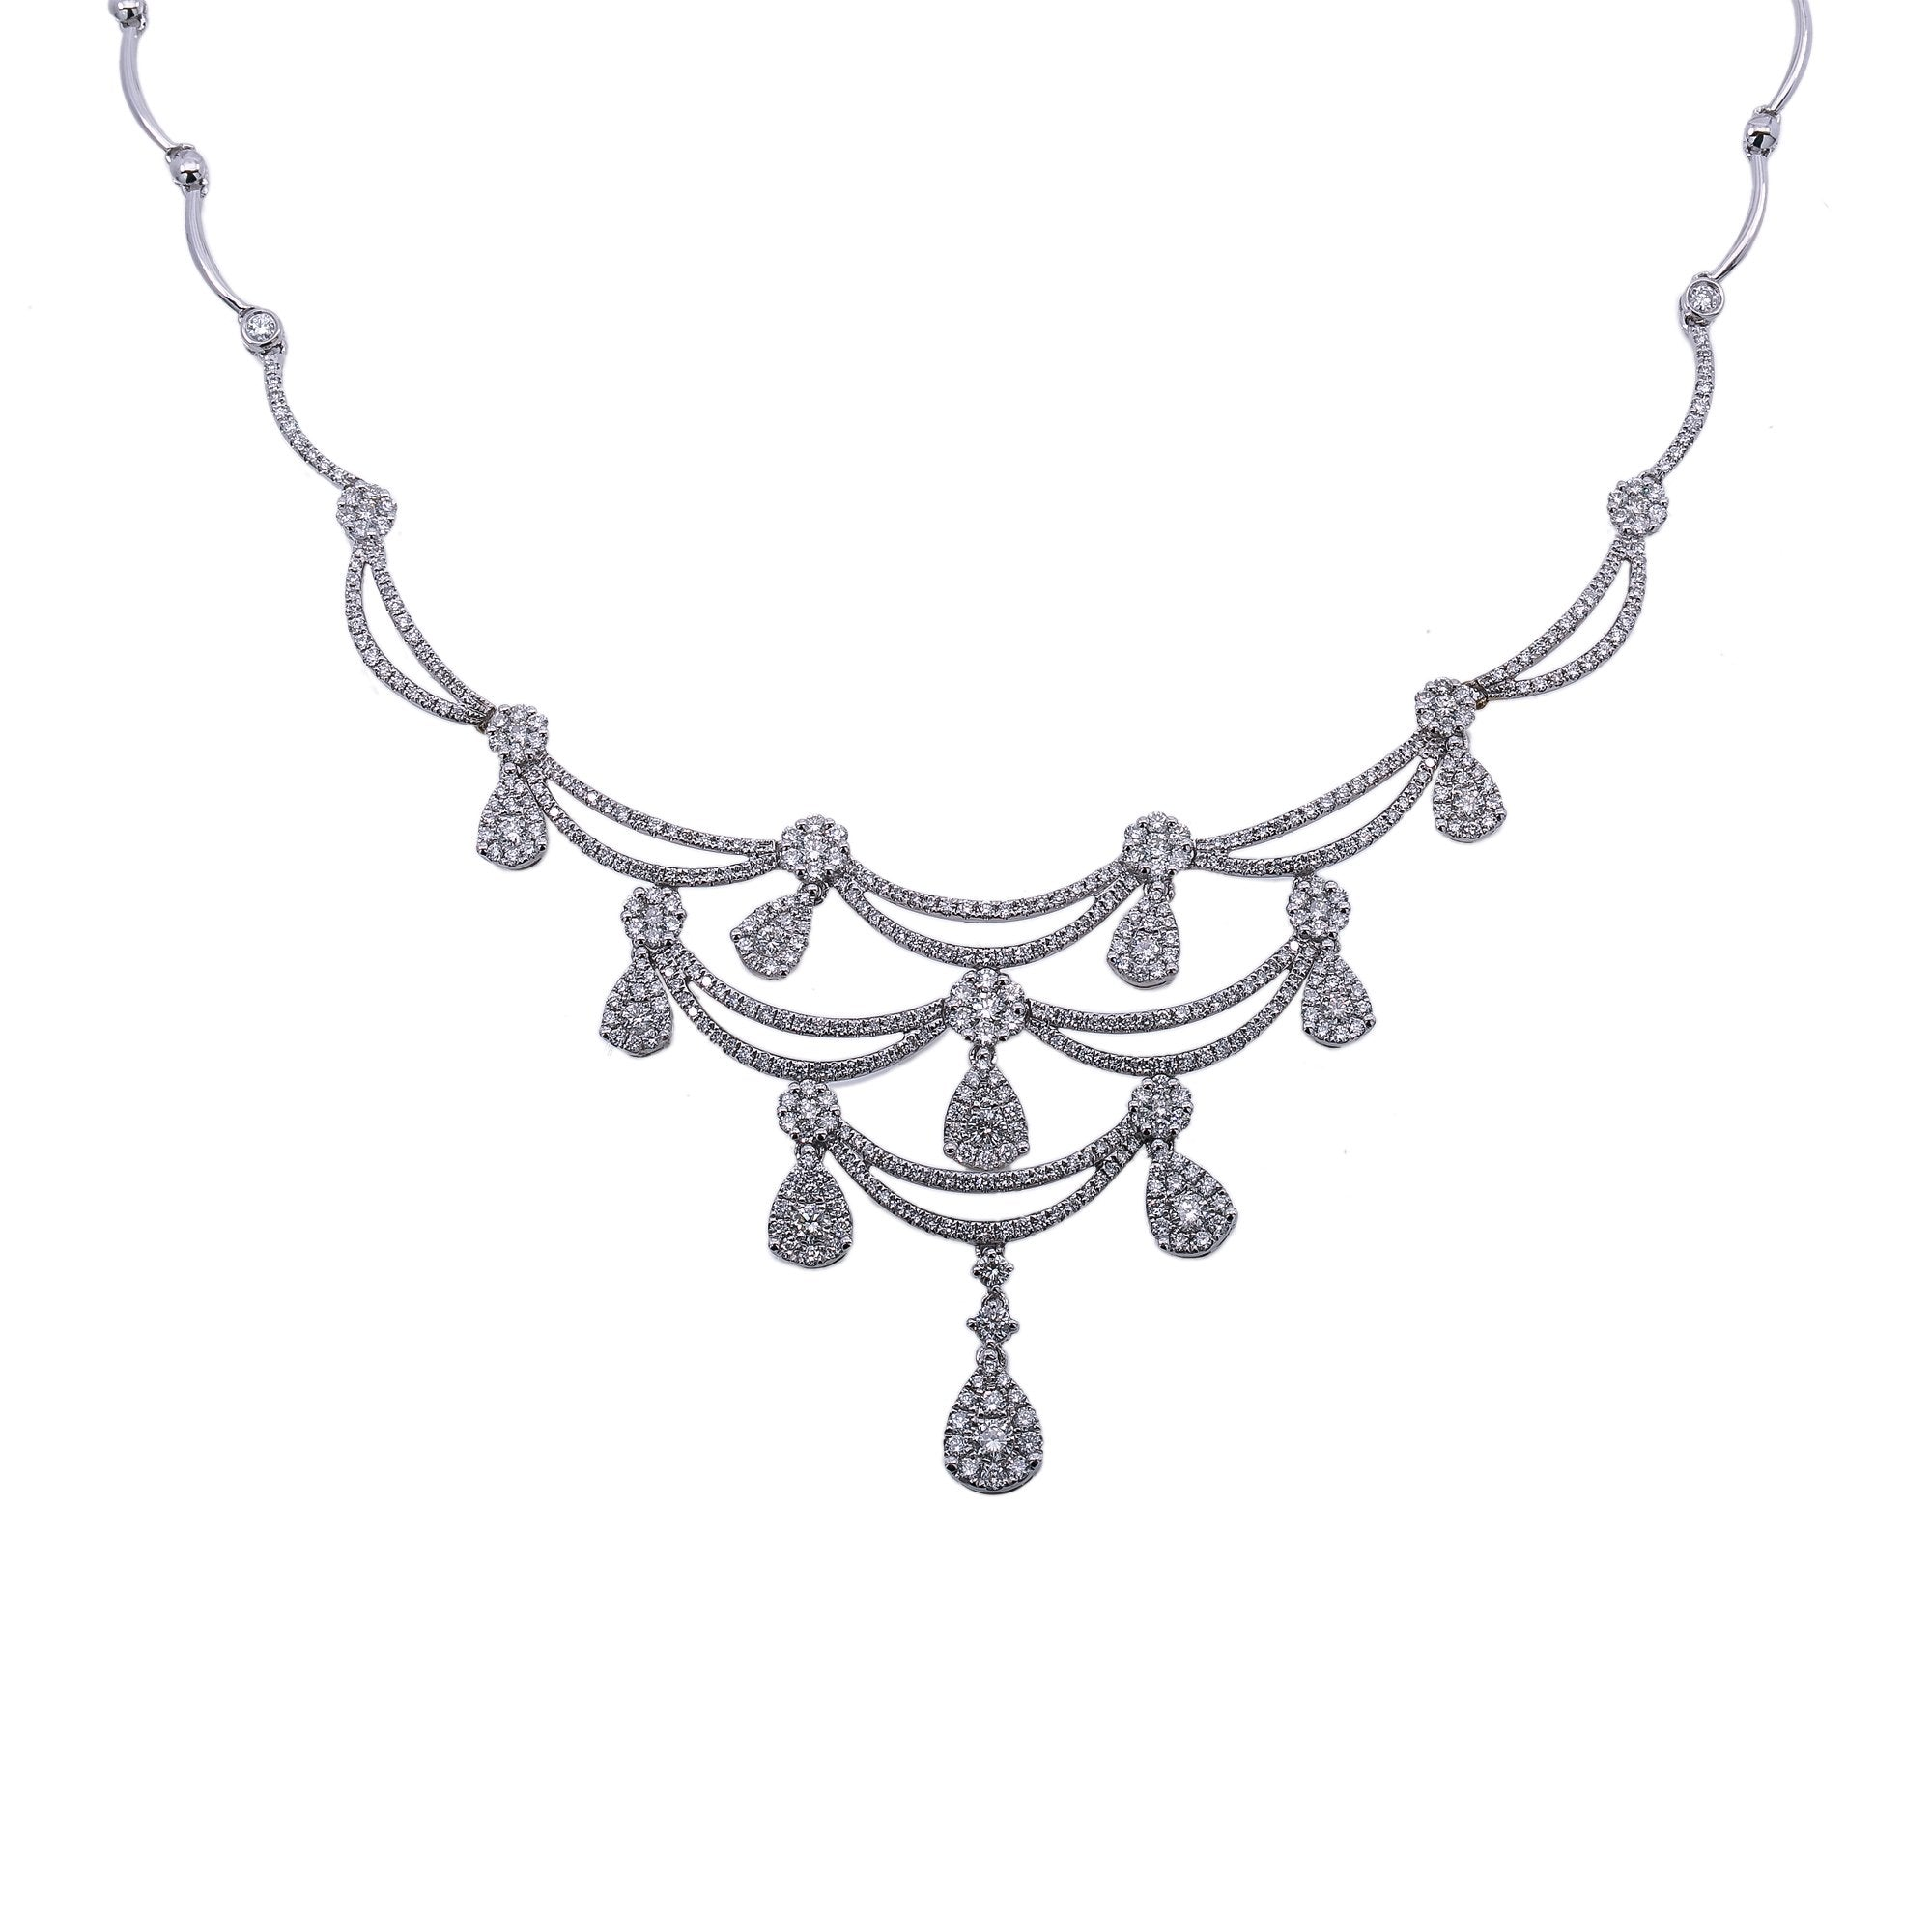 18K White Gold Women's Necklace 4.61 CT Diamonds